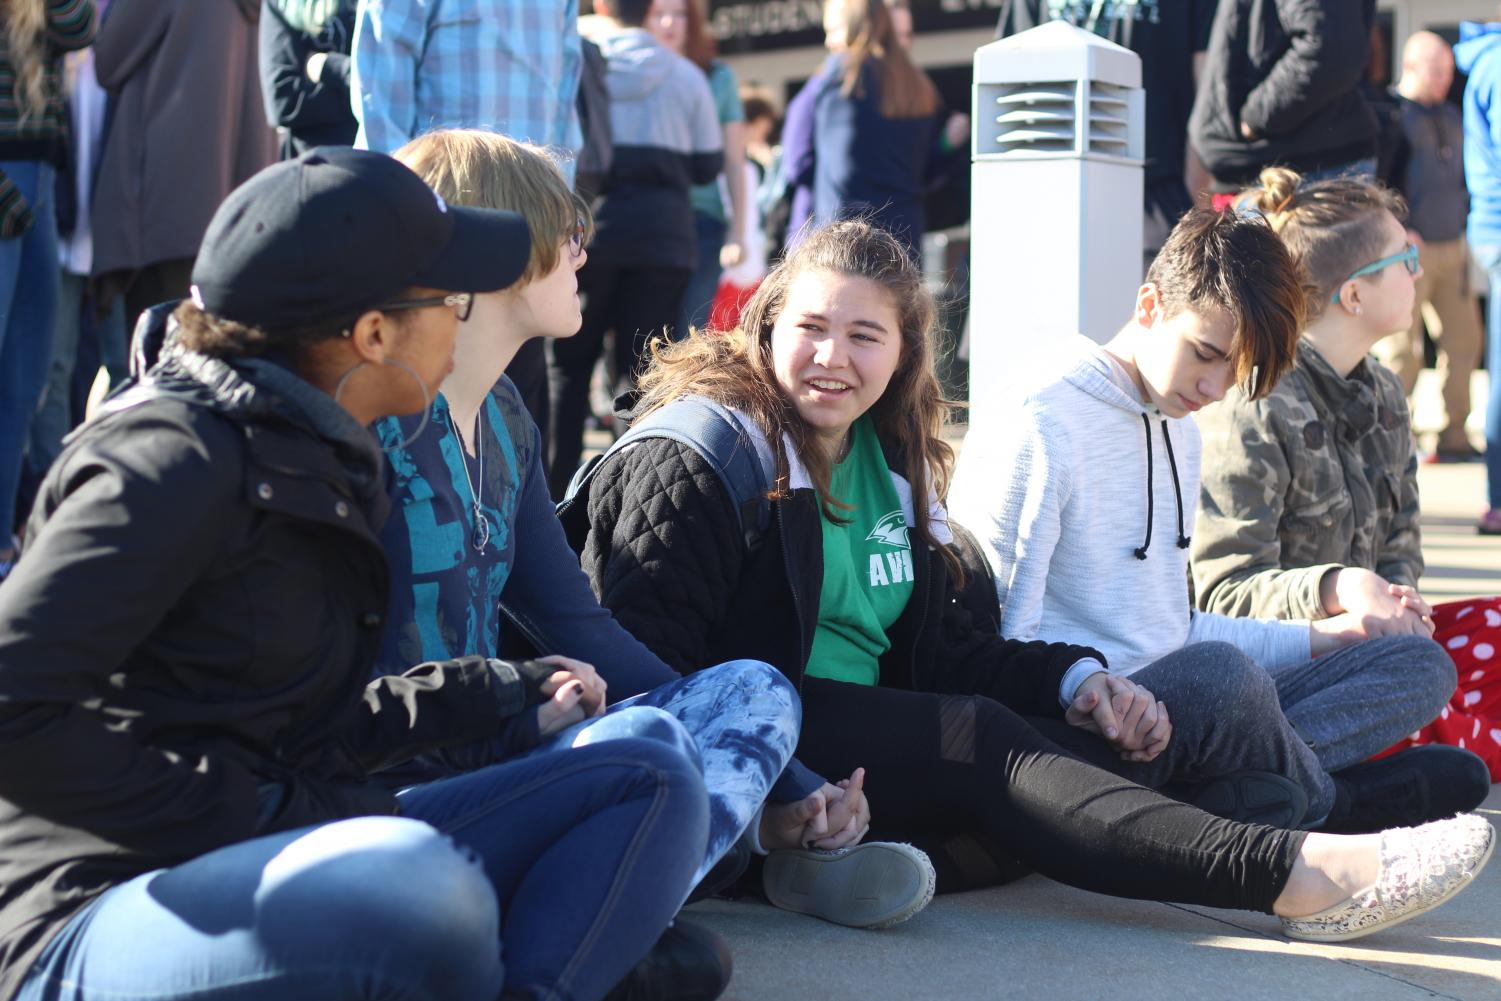 """While participating in the walkout on March 14, sophomores Lexi Valdez, Naomi Davis, Maria Engemann, Tanner Sneed and Shayla Crumb-Potmesil sit and hold hands out of respect for the 17 victims of the Parkland, Fla., school shooting. #NationalWalkoutDay was trending globally on Twitter to cover all the walkouts  across the country. """"We wanted to sit down to make it better because everyone else was standing and talking and laughing, instead of paying attention to the ones who passed away,"""